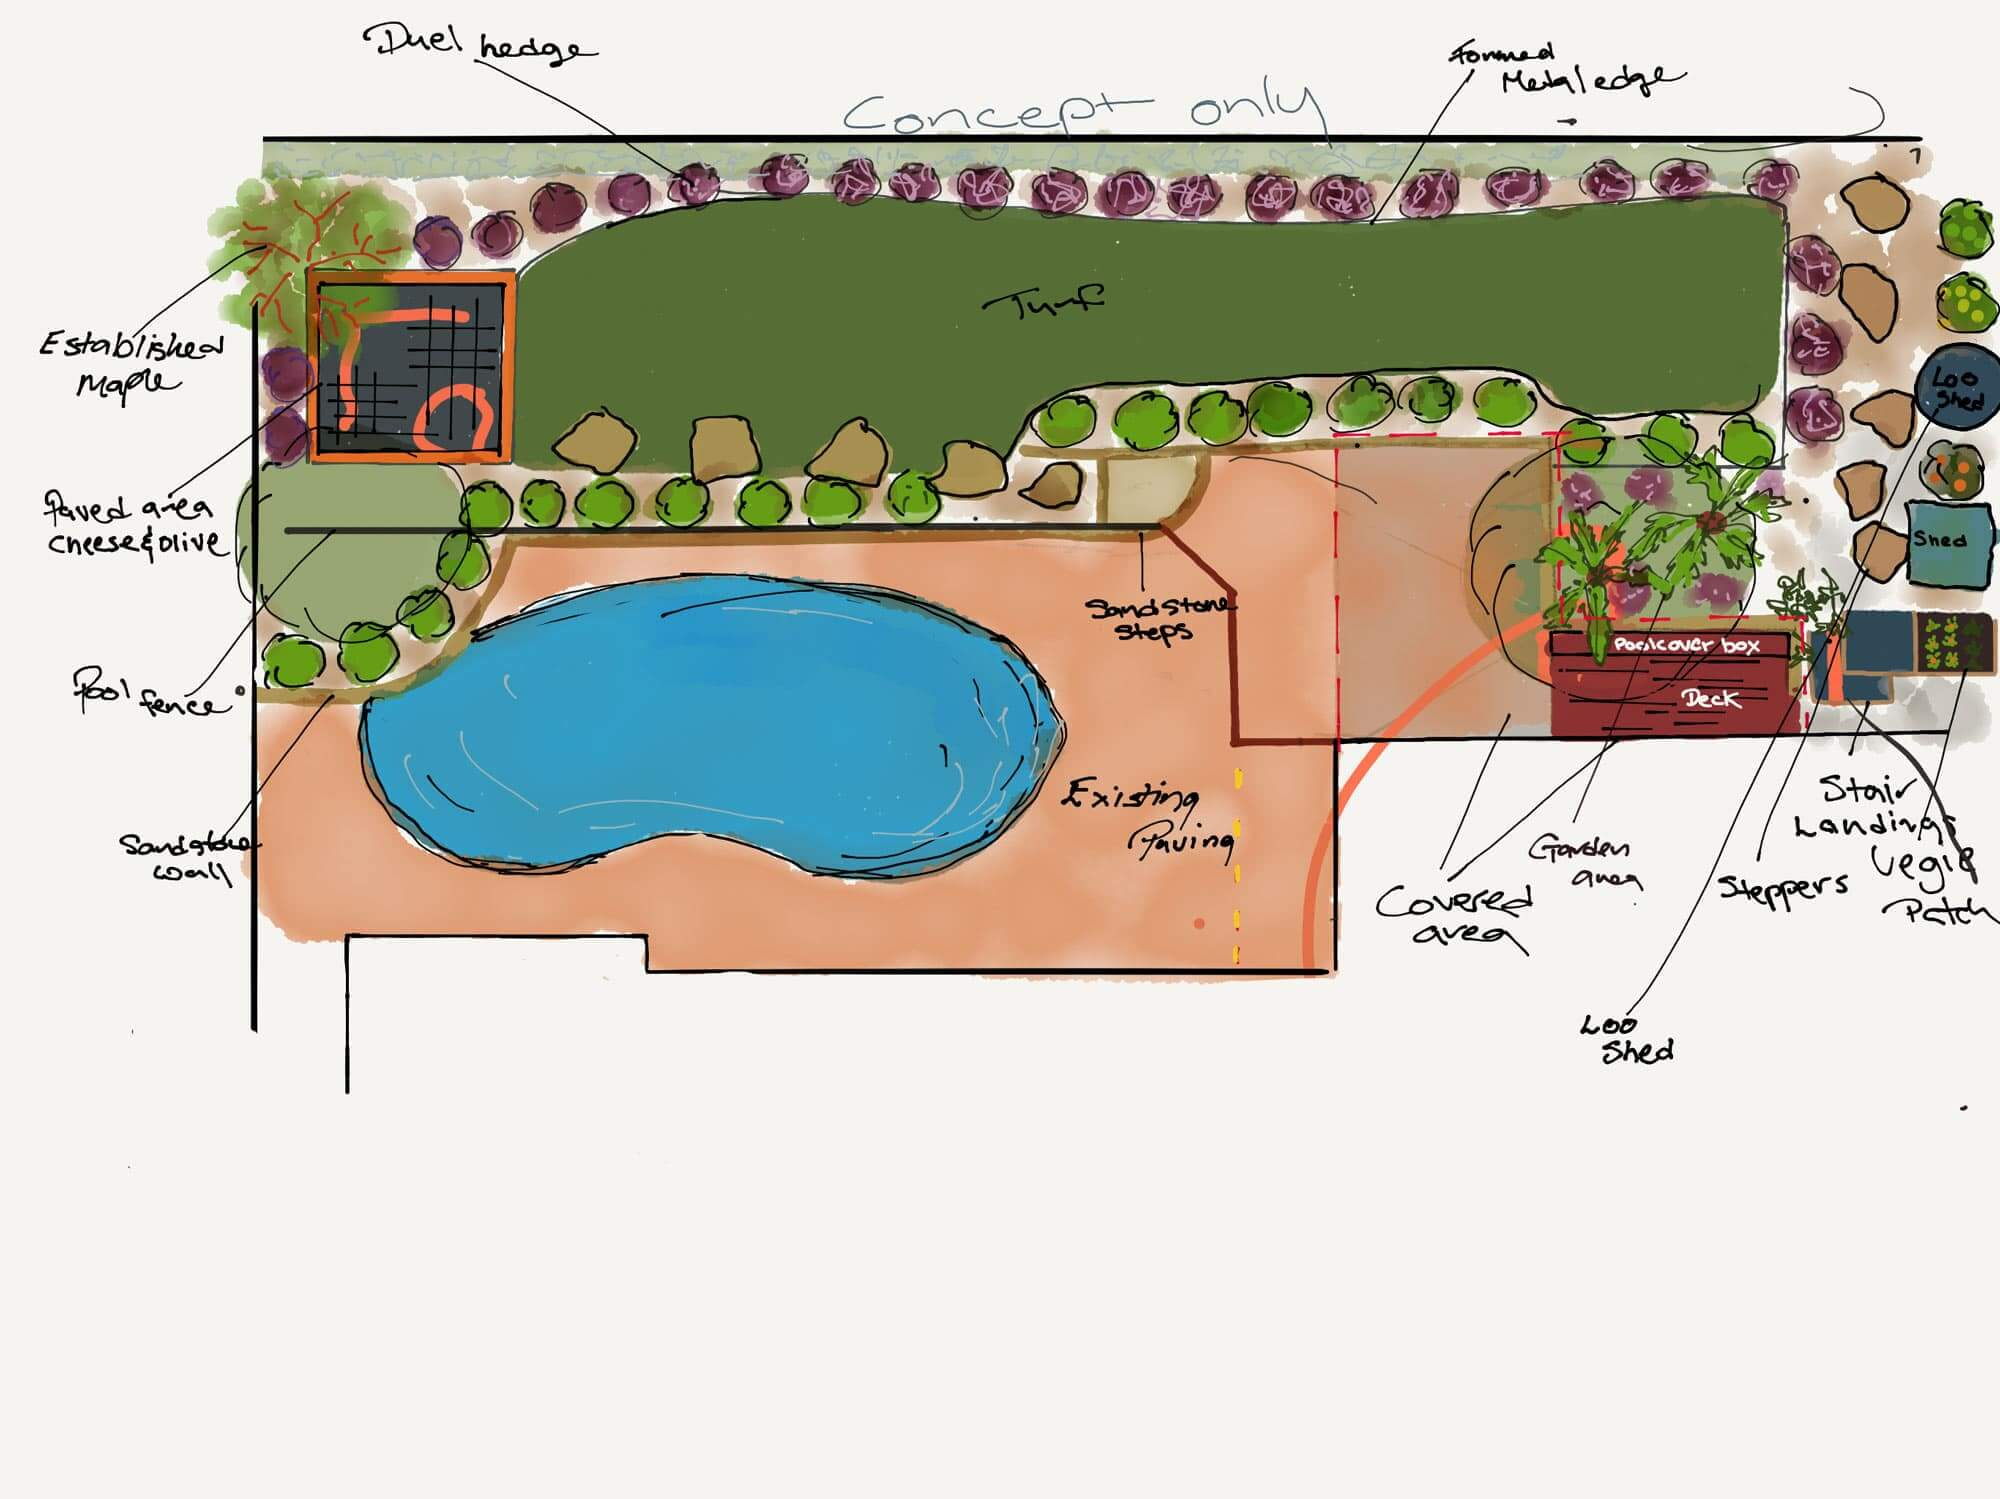 Gardengigs Project Concepts and Designs with Swimming Pool